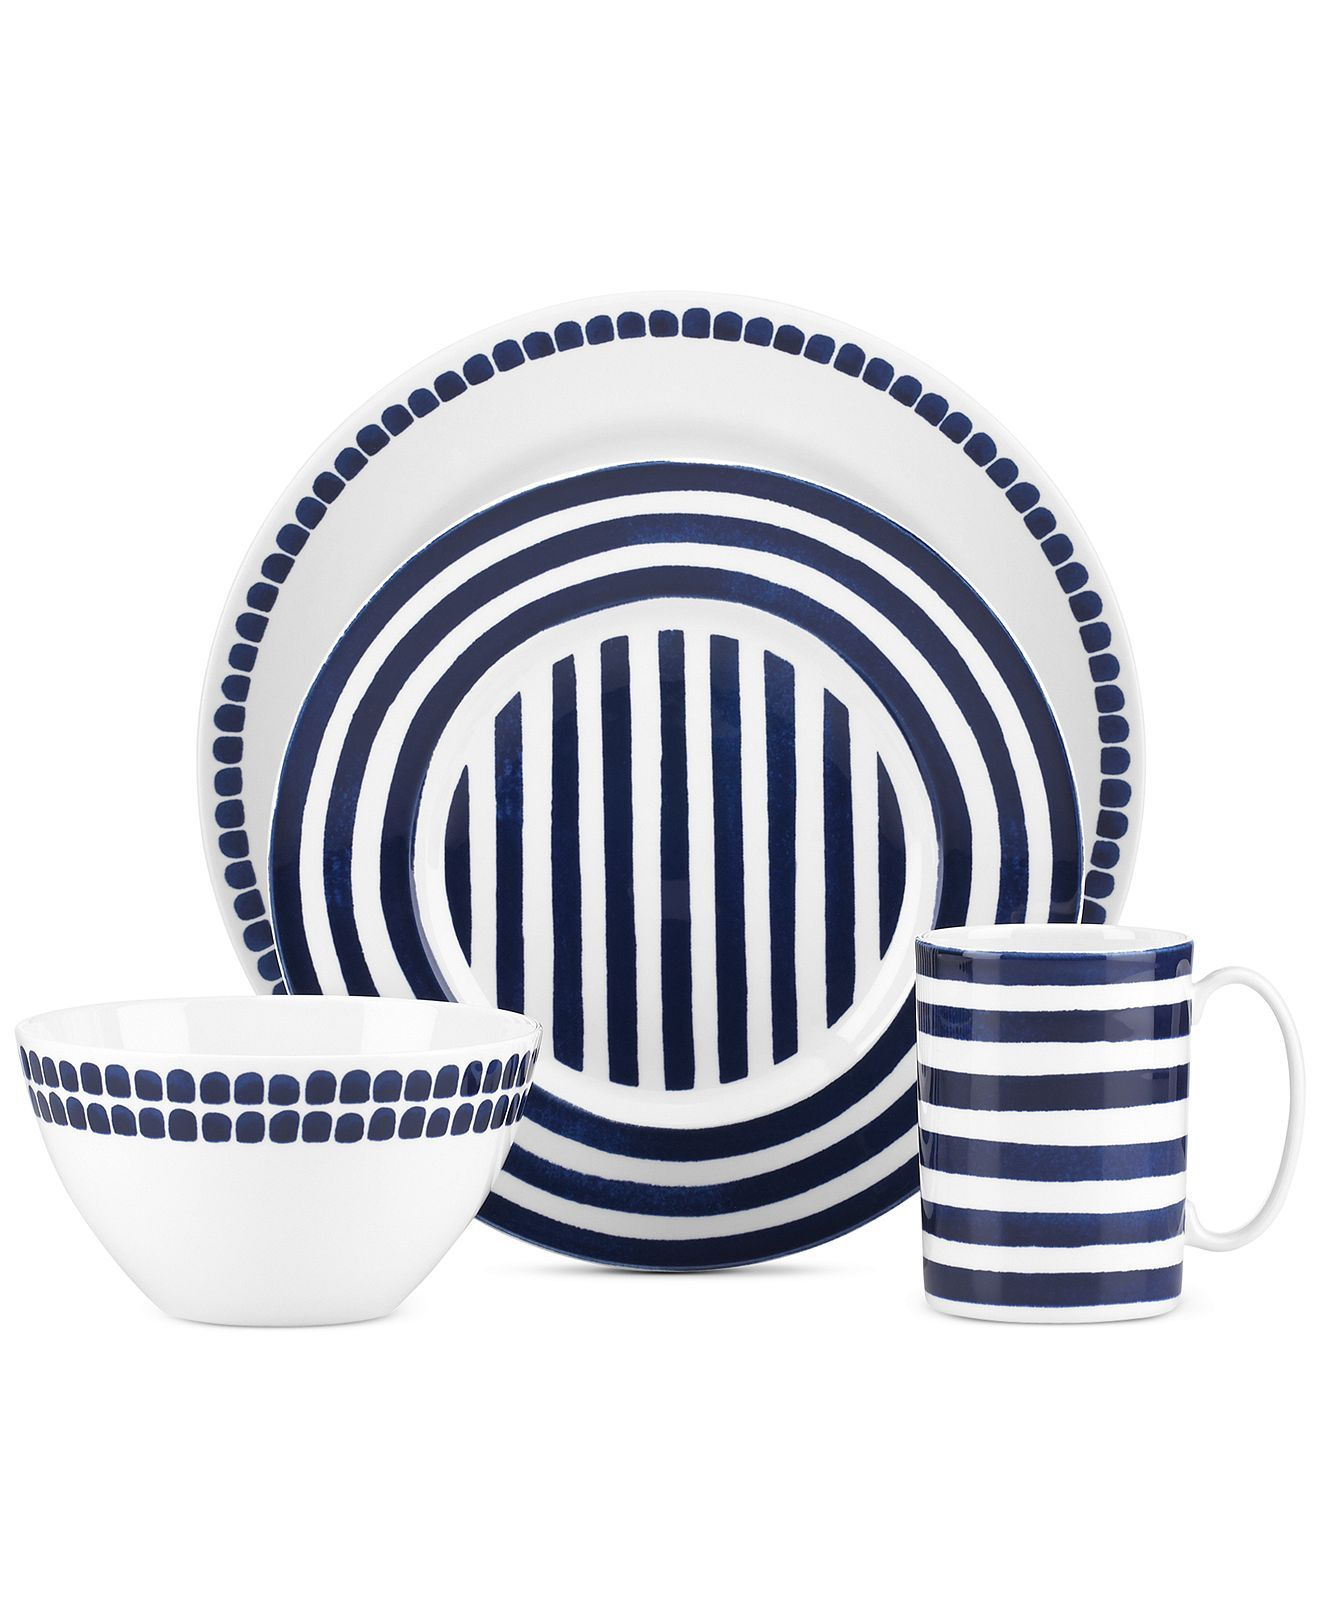 Kate Spade Charlotte Street North Collection - kate spade new york - Dining u0026 Entertaining - Macyu0027s  sc 1 st  Pinterest & Kate Spade Charlotte Street North Collection   Casual dinnerware ...